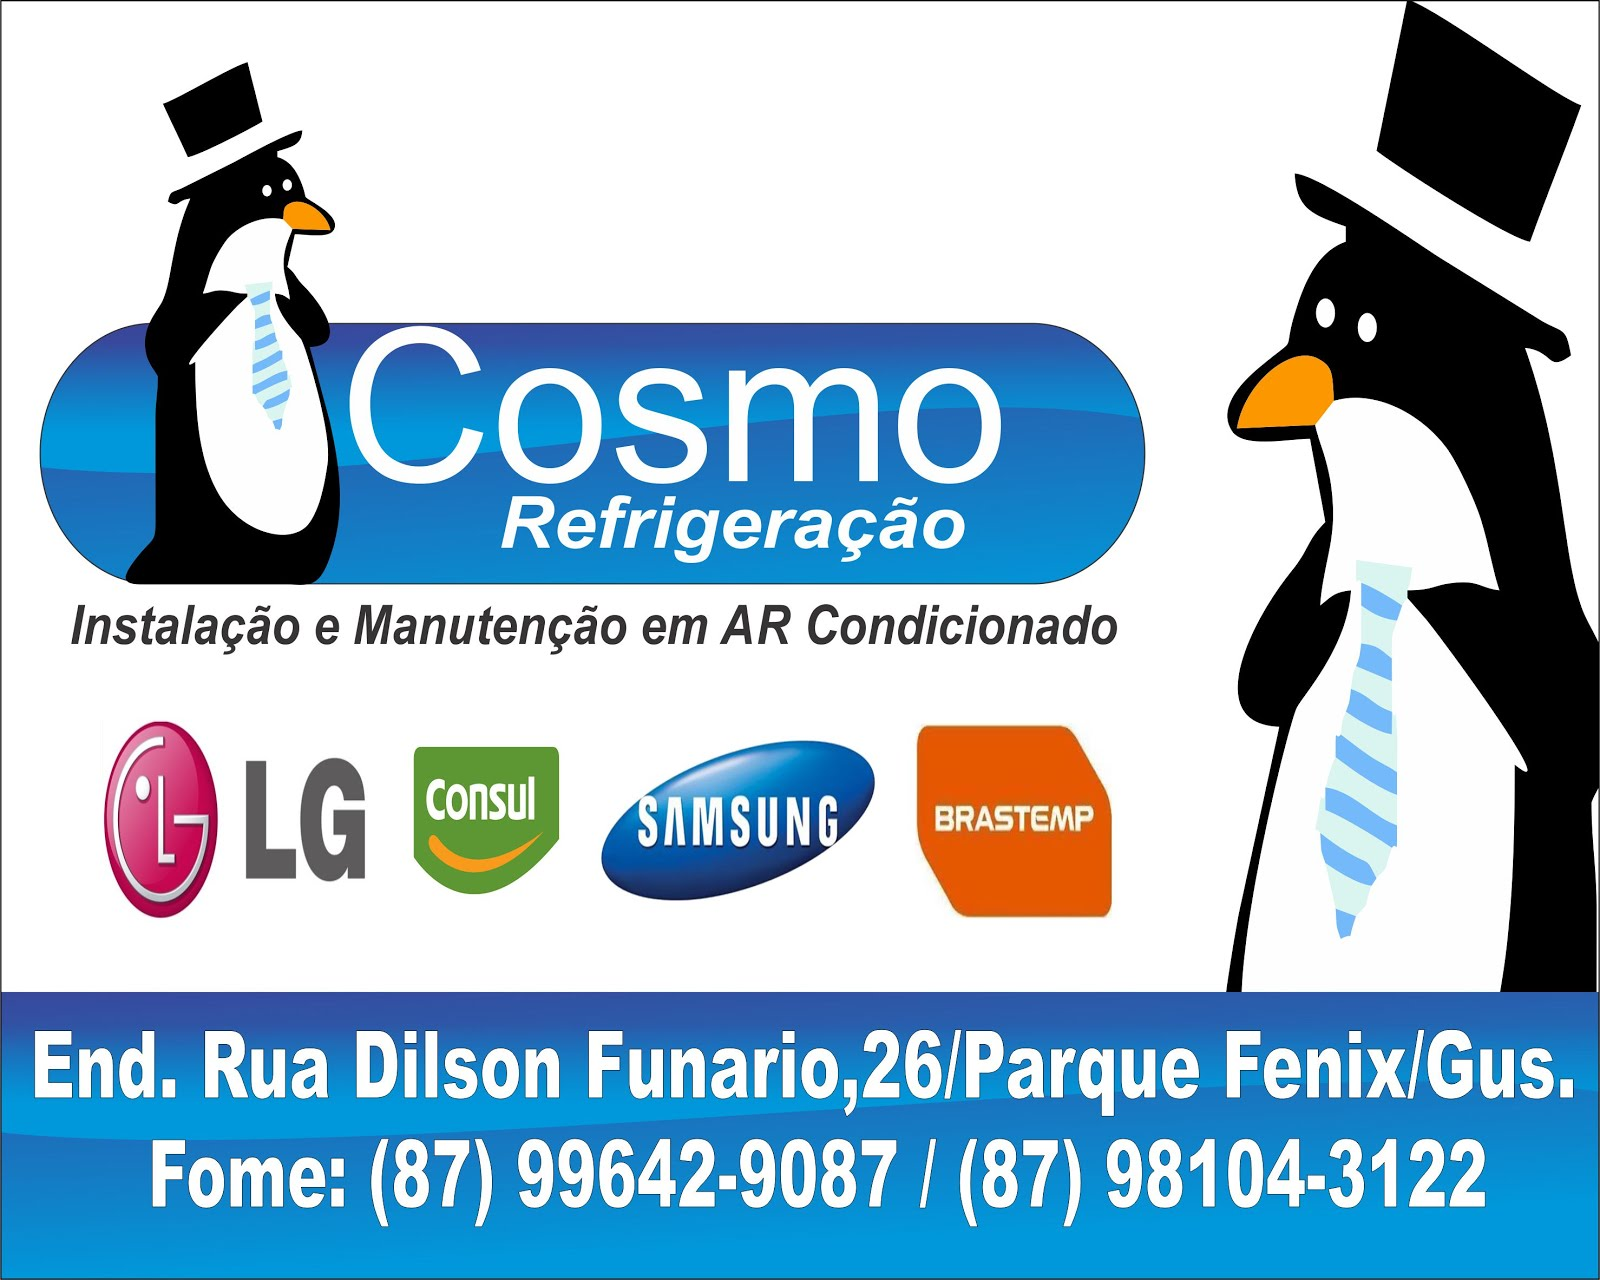 Cosmo Refrigeração.